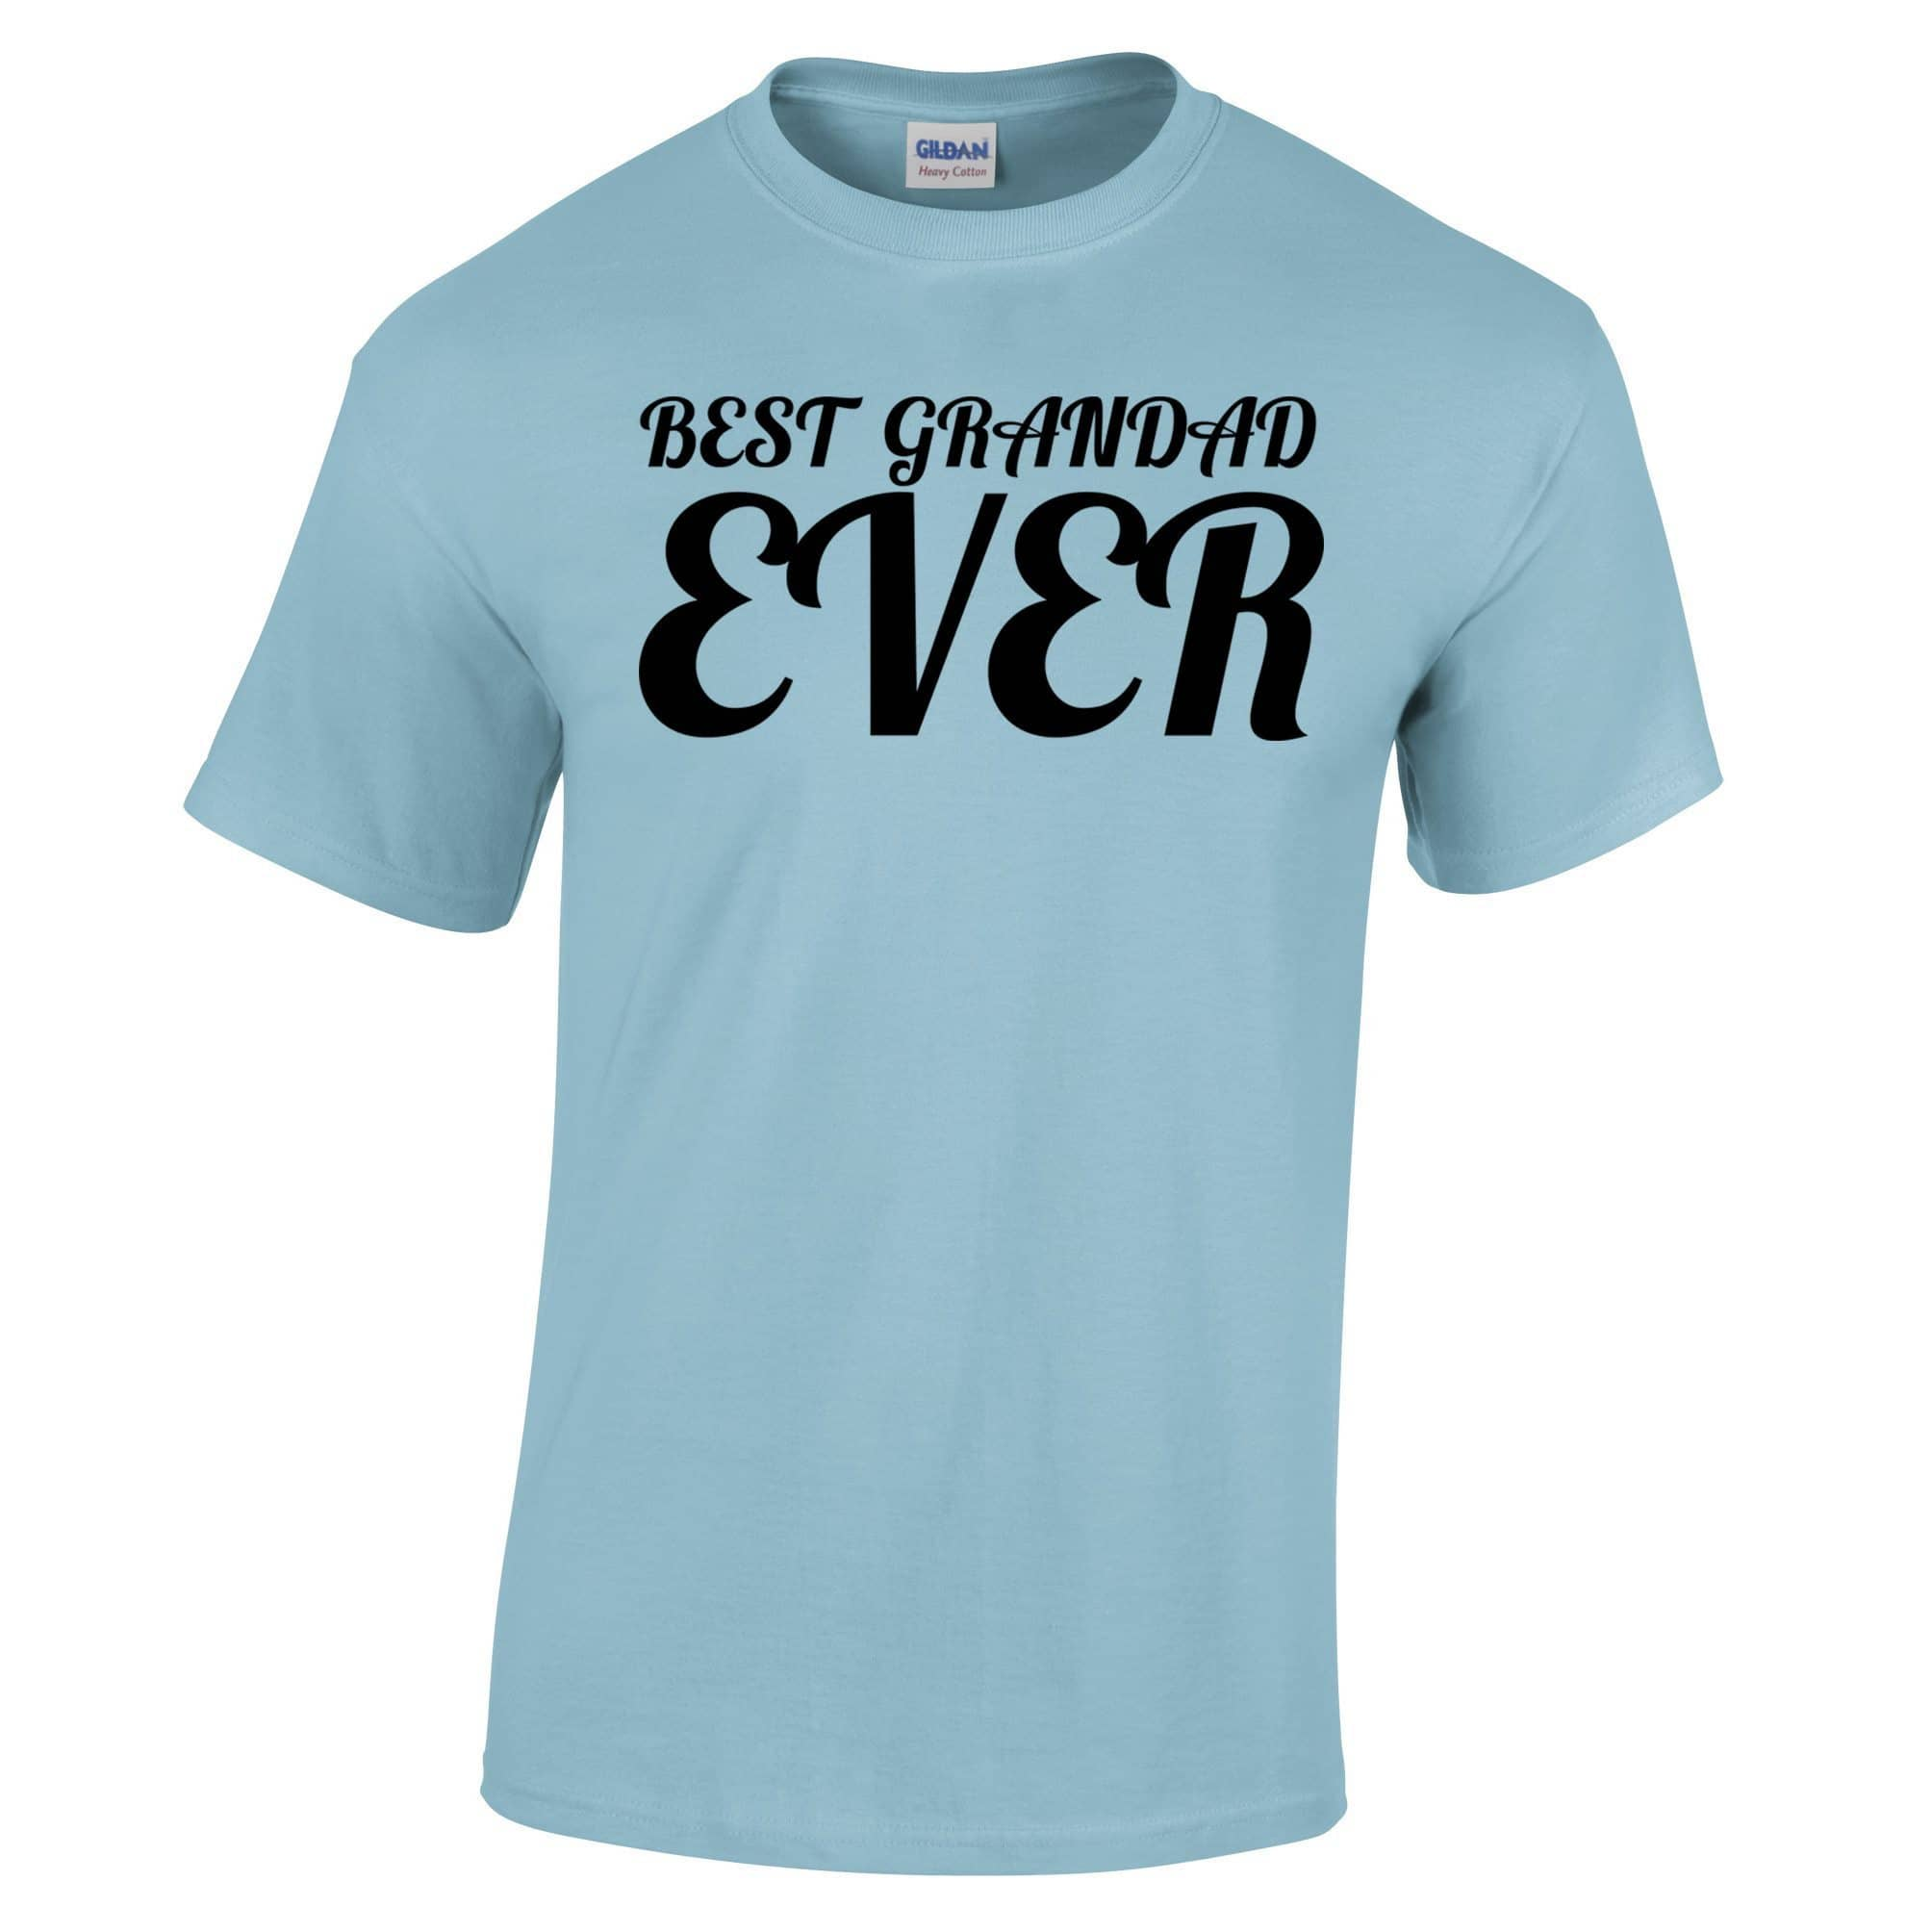 Fathers Day T Shirt Best Grandad Ever Slogan